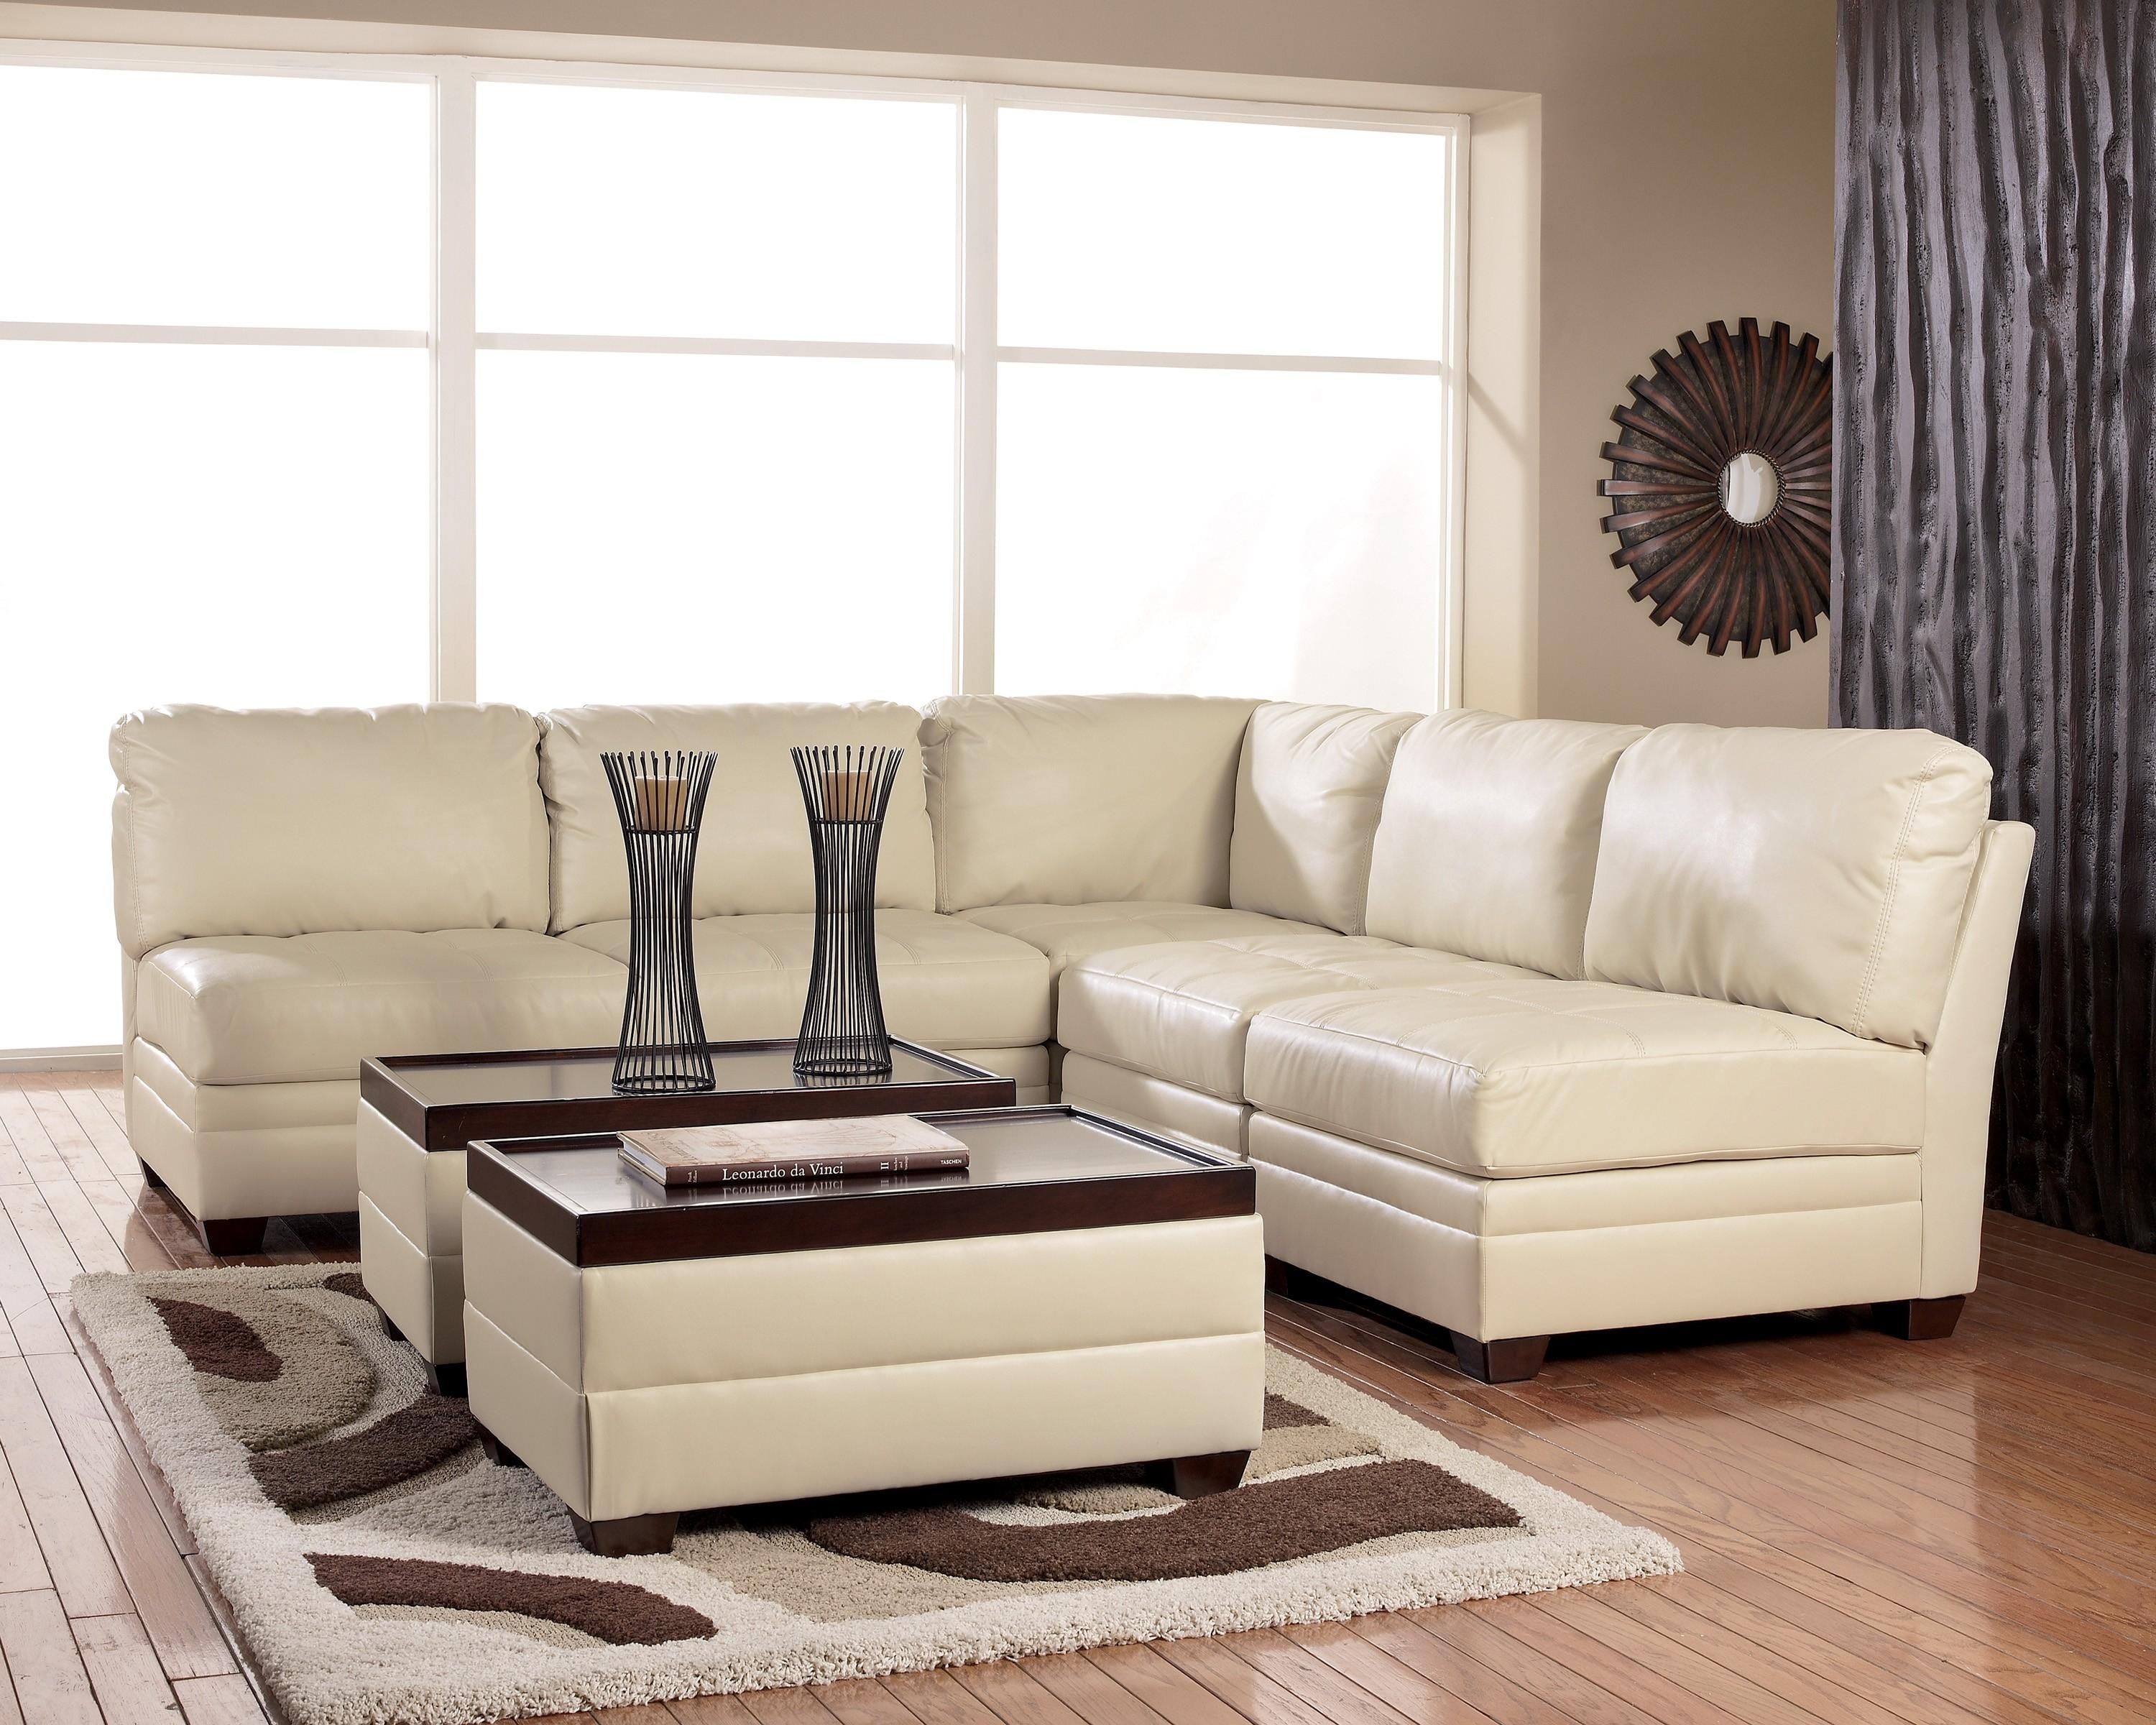 Sofas Center : Sectional Sofas Ashley Furniture Faux Leather Sofa In Faux Leather Sectional Sofas (View 7 of 15)